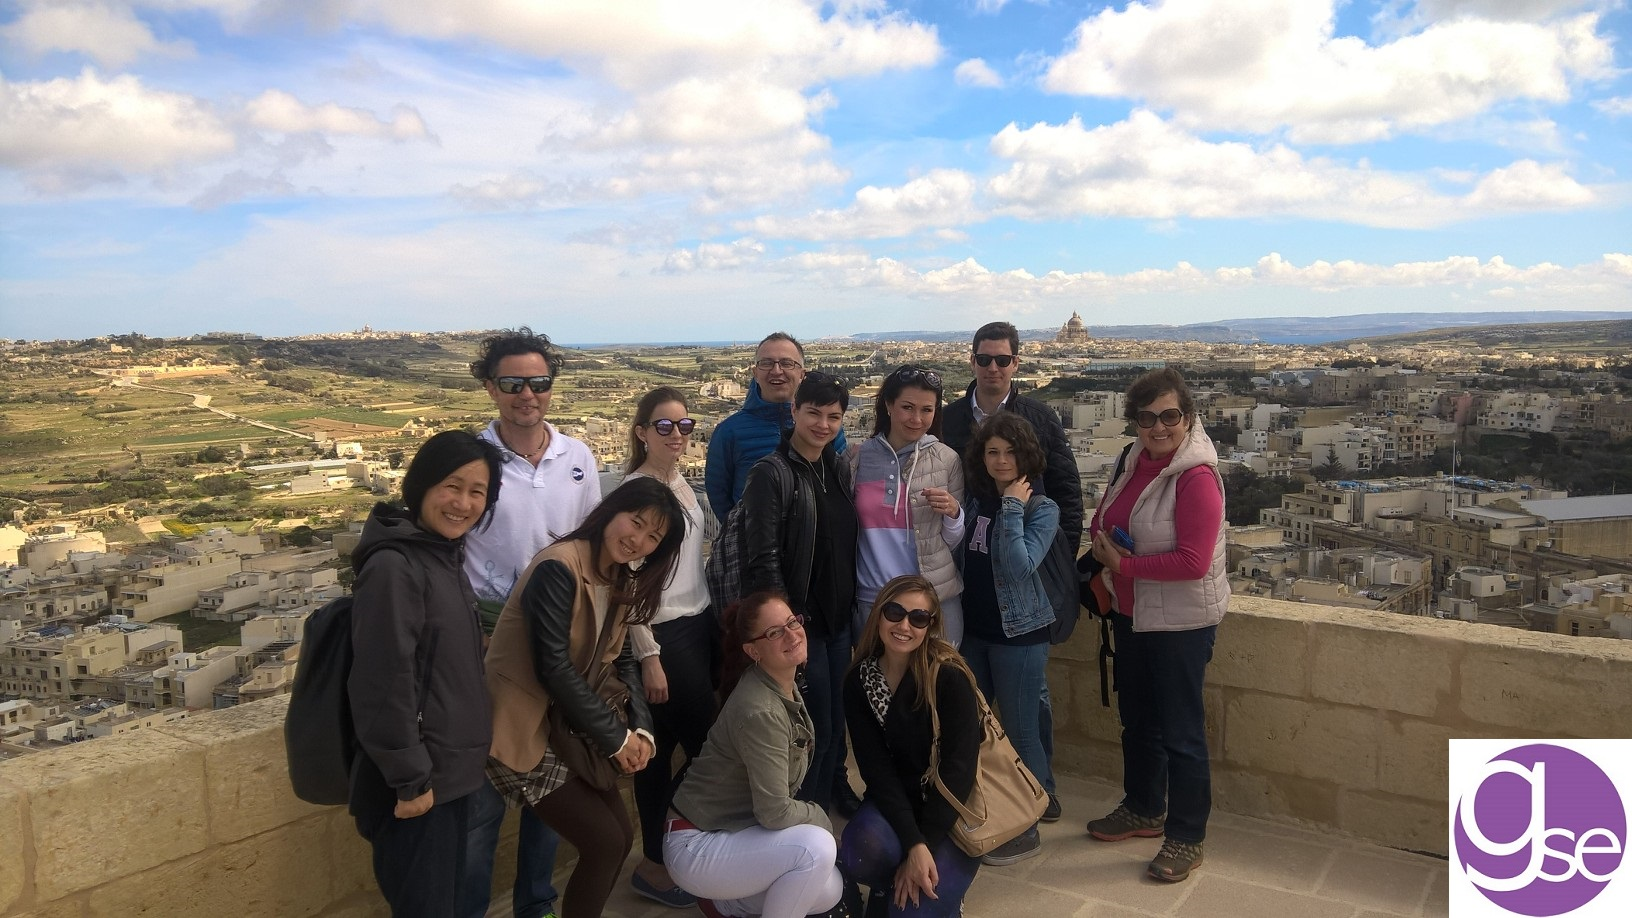 GSE Malta Social Programme Gozo & Comino Full Day group photo at the Citadel